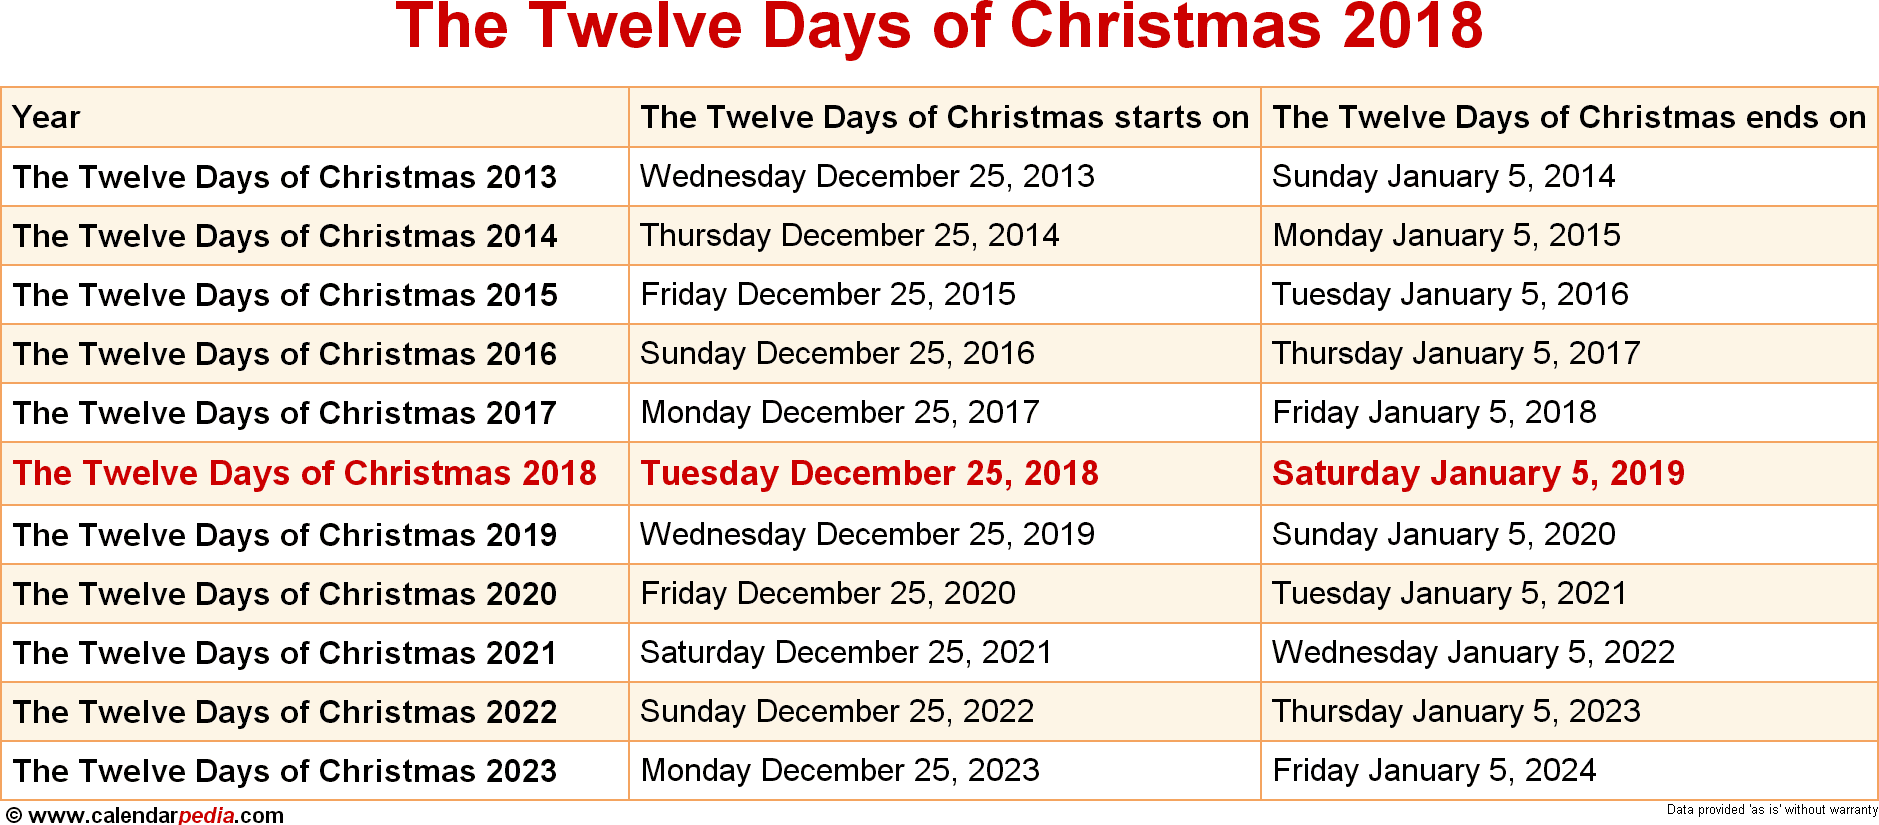 dates for the twelve days of christmas from 2013 to 2023 - Whens Christmas Day